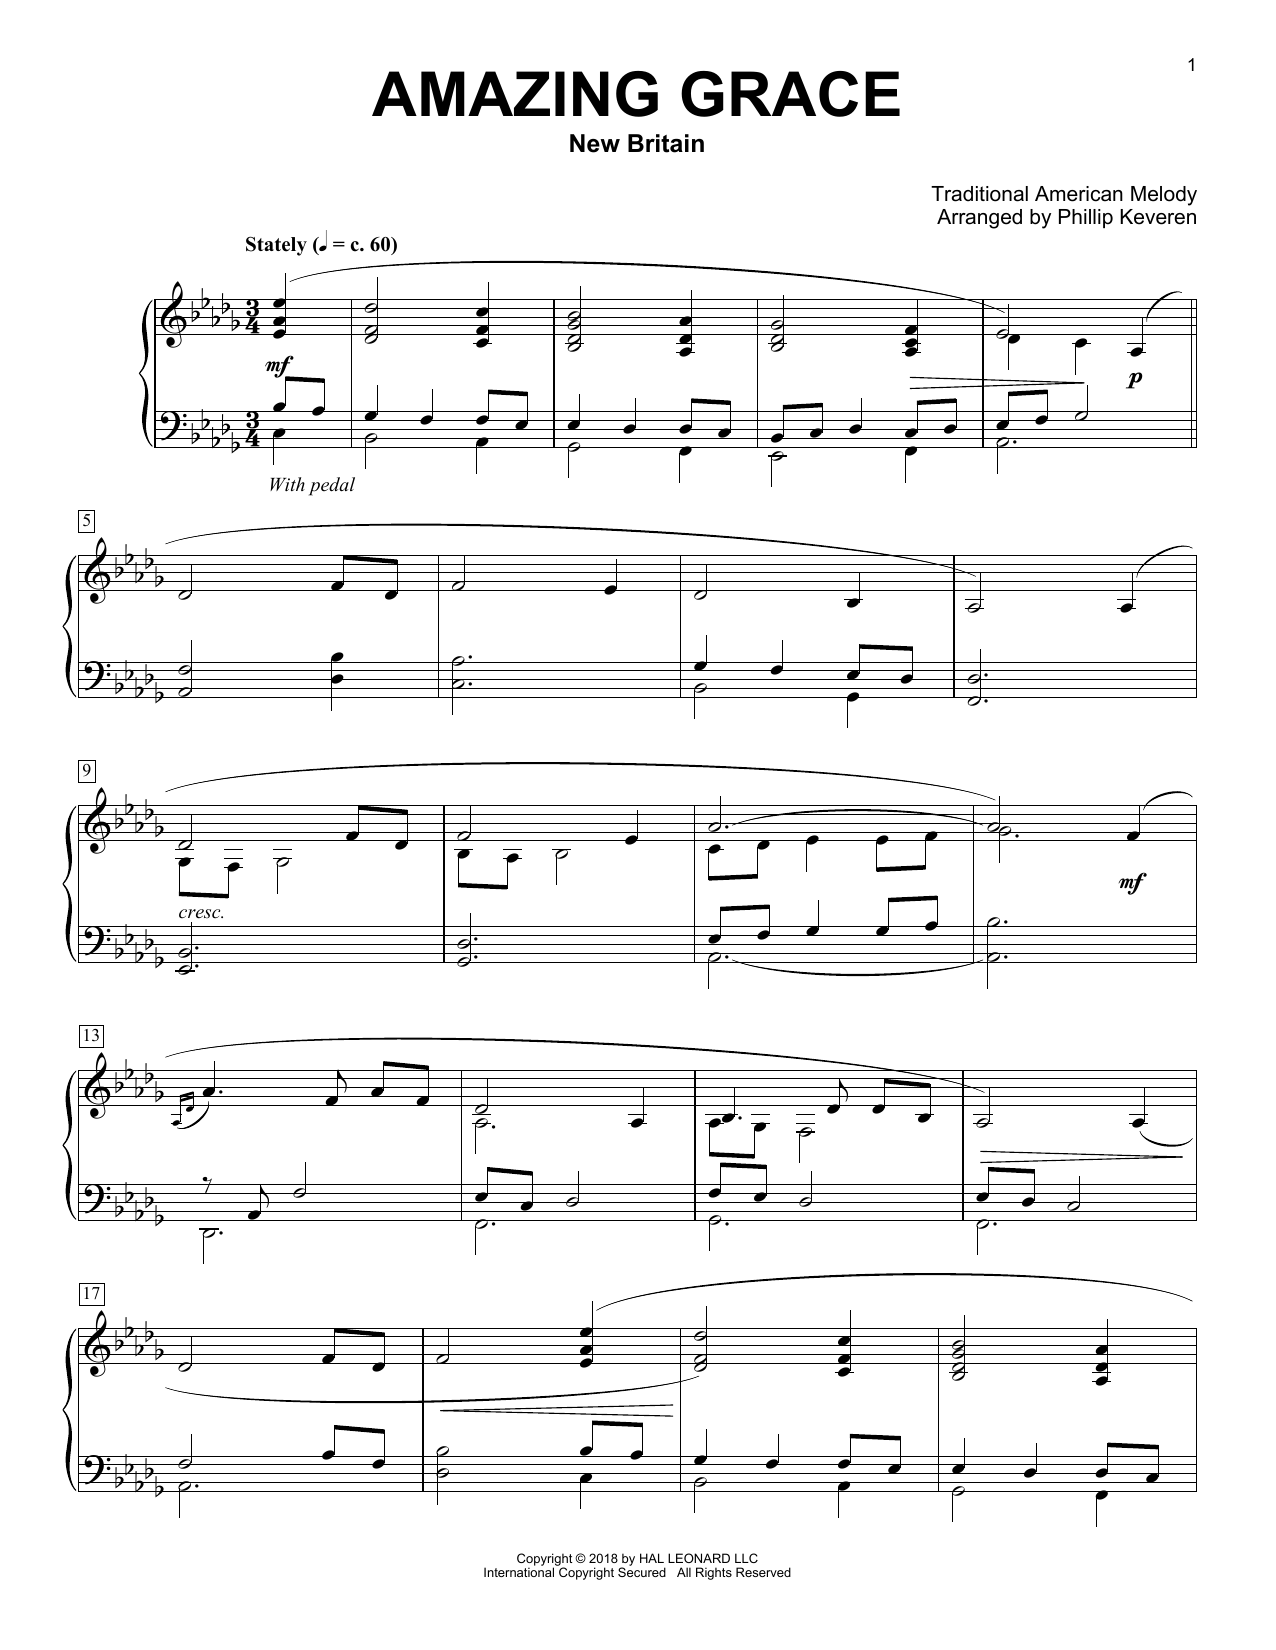 Traditional American Melody Amazing Grace [Classical version] (arr. Phillip Keveren) sheet music notes and chords. Download Printable PDF.